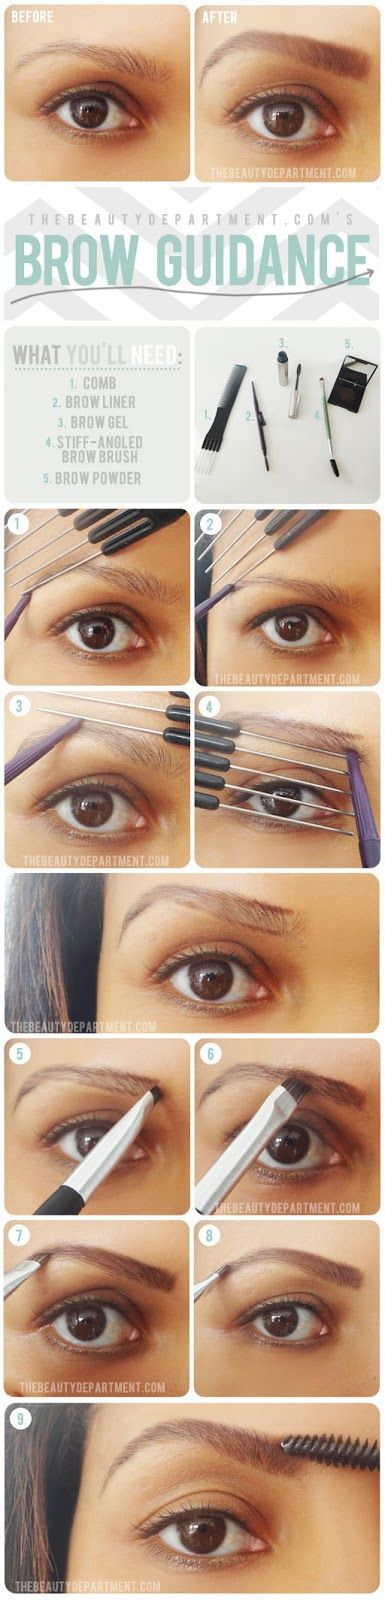 Now This Brow Definition Tutorial Works For Me Doesnt Look Like